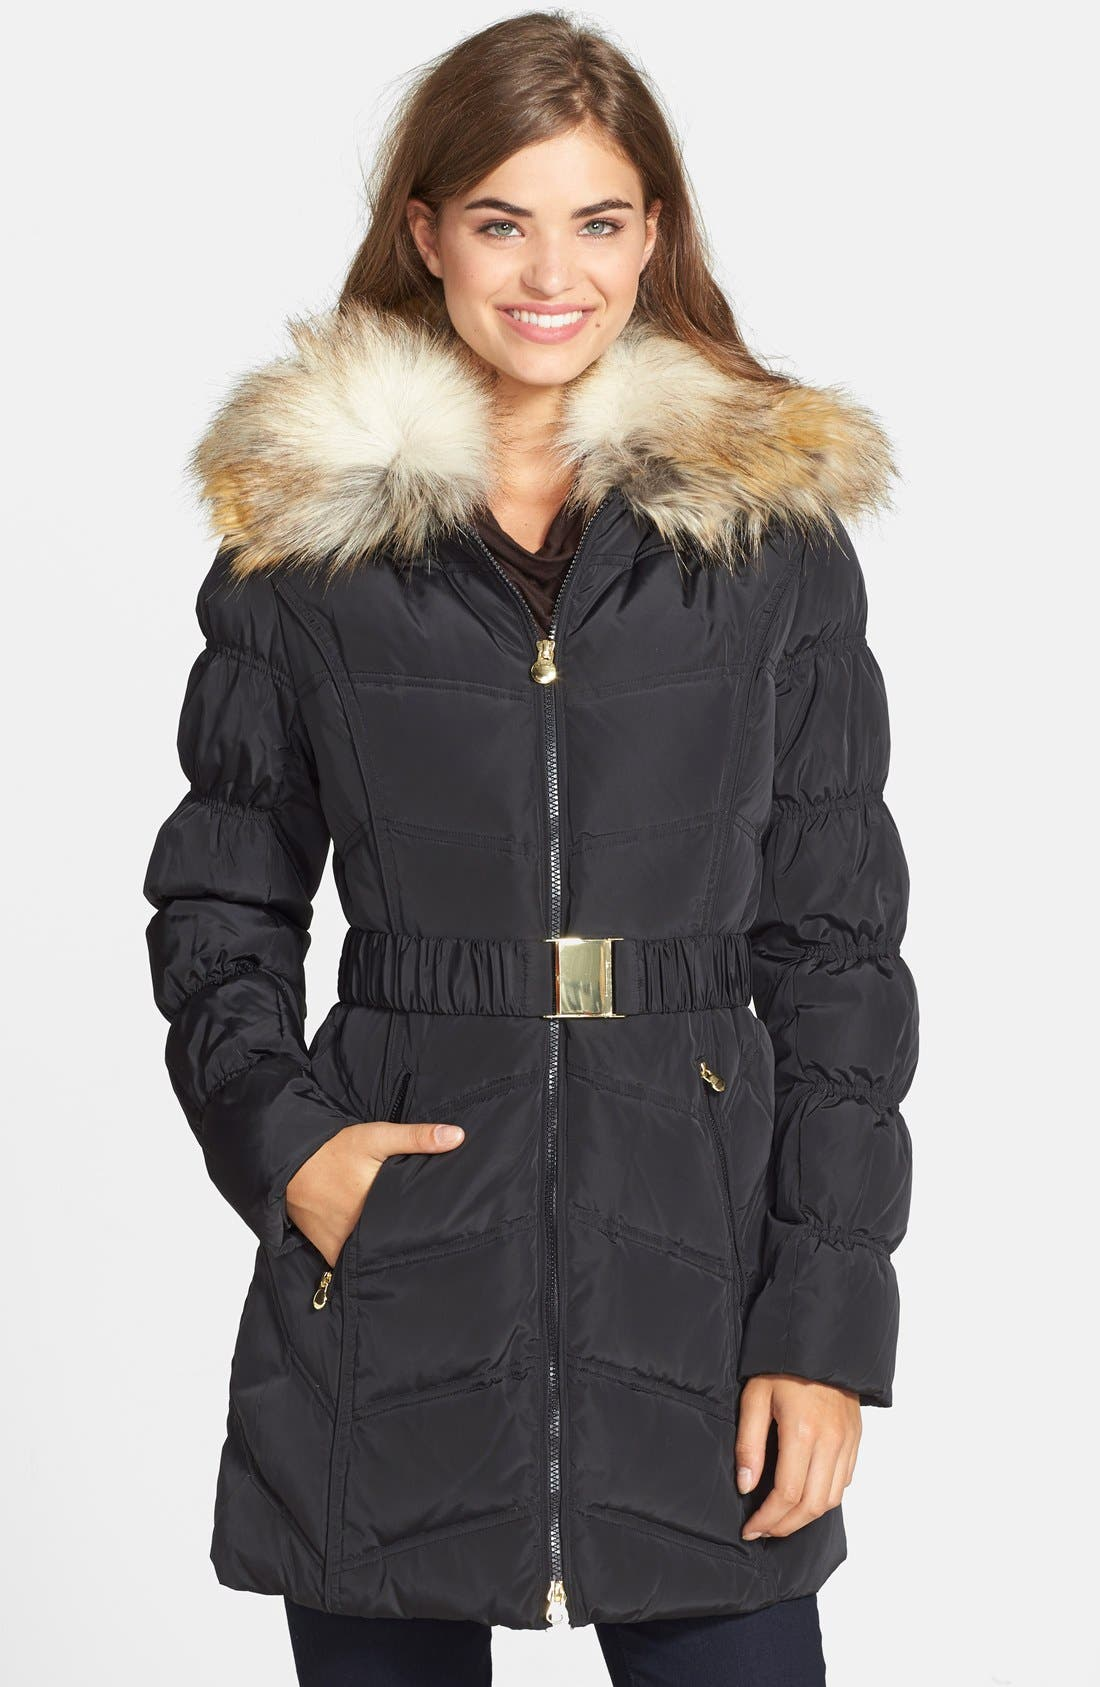 Main Image - Laundry by Shelli Segal Belted Puffer Coat with Faux Fur Trim